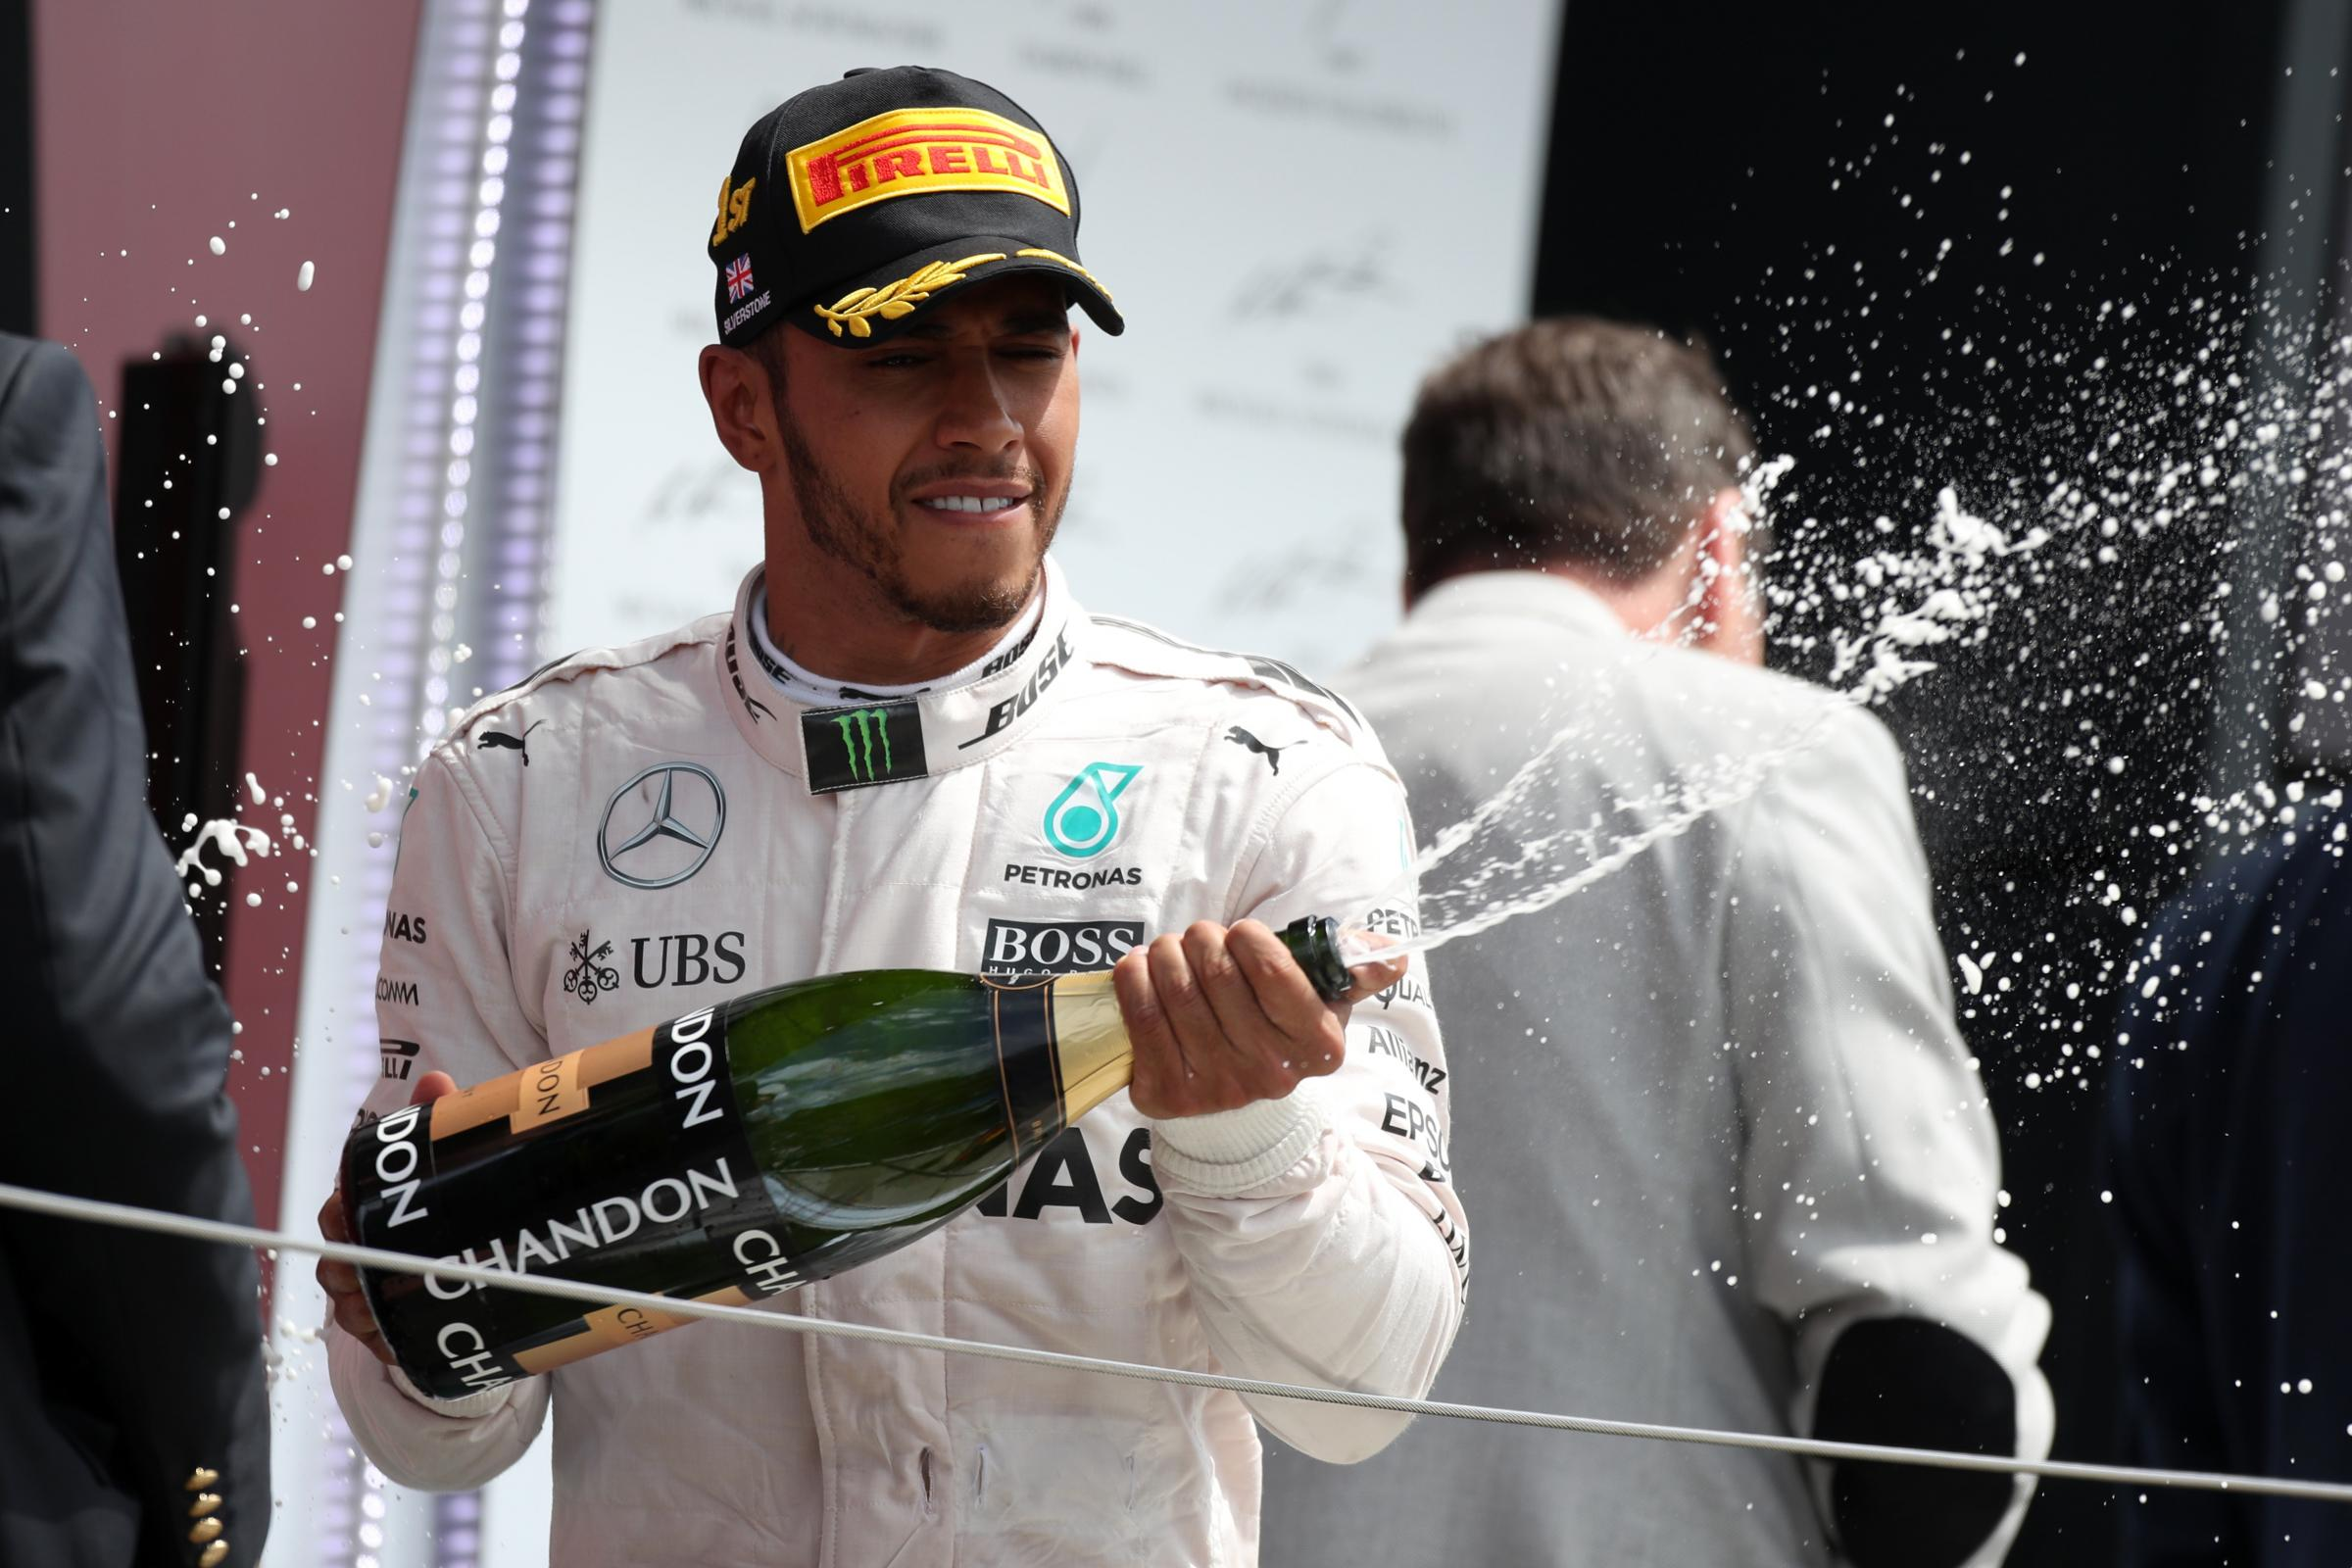 ad2a6ff6f3a8d How Lewis Hamilton compares to the Formula One greats